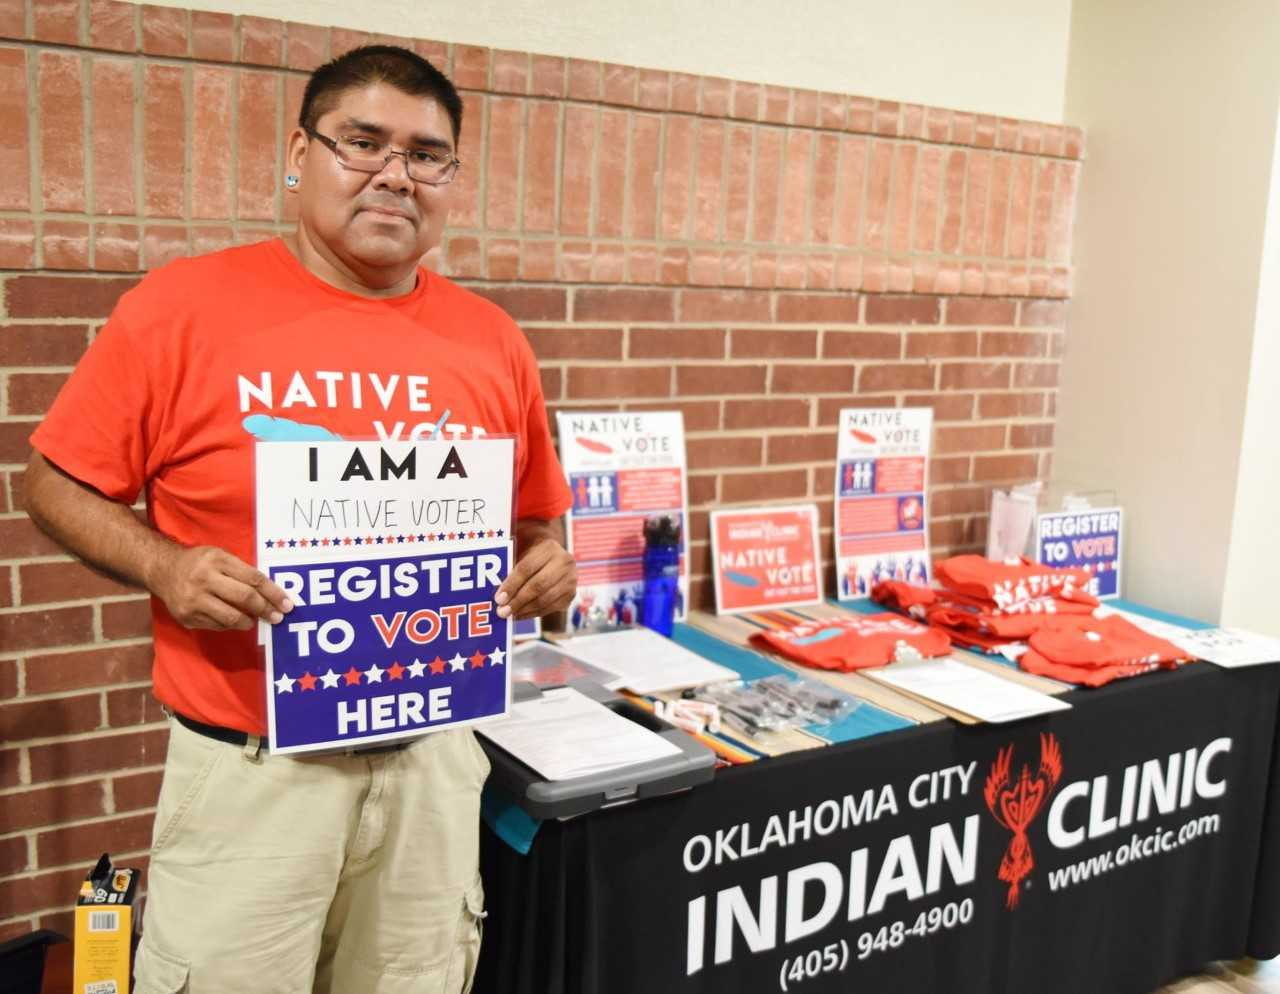 Showing Native voter pride at Oklahoma City Indian Clinic.